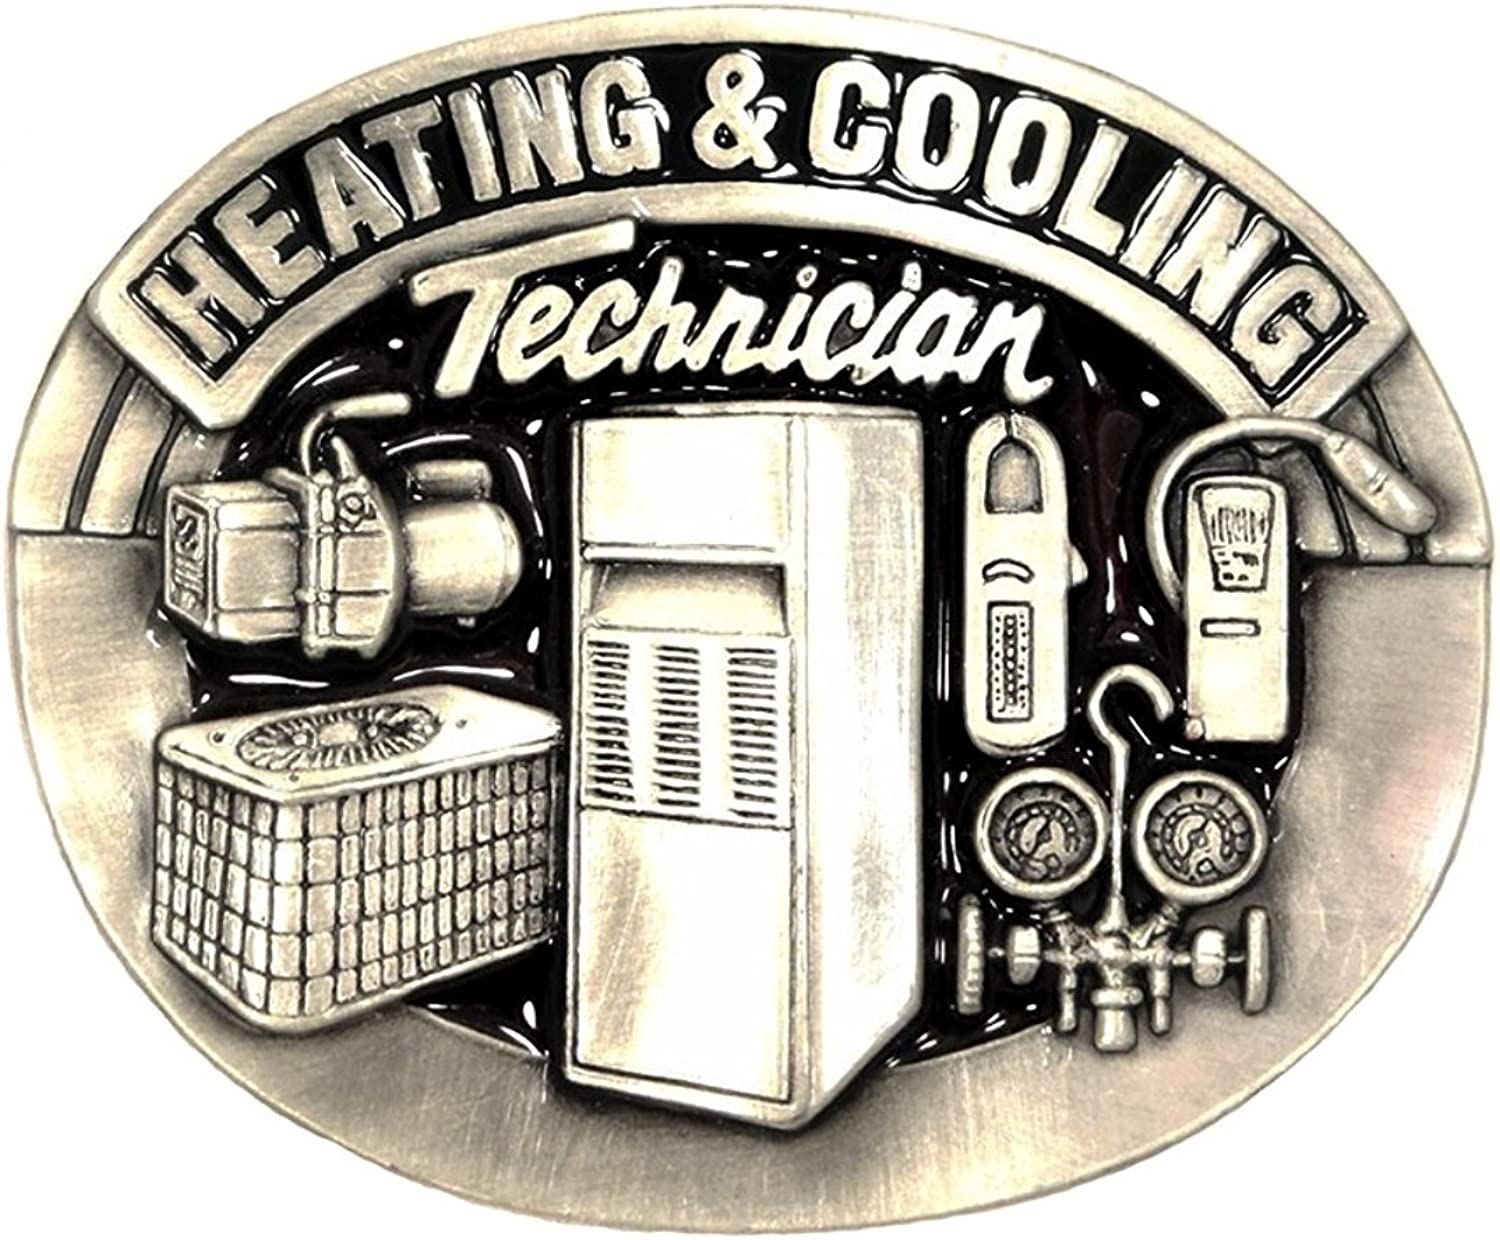 HEATING AND COOLING TECHNICIAN OCCUPATION BELT BUCKLE